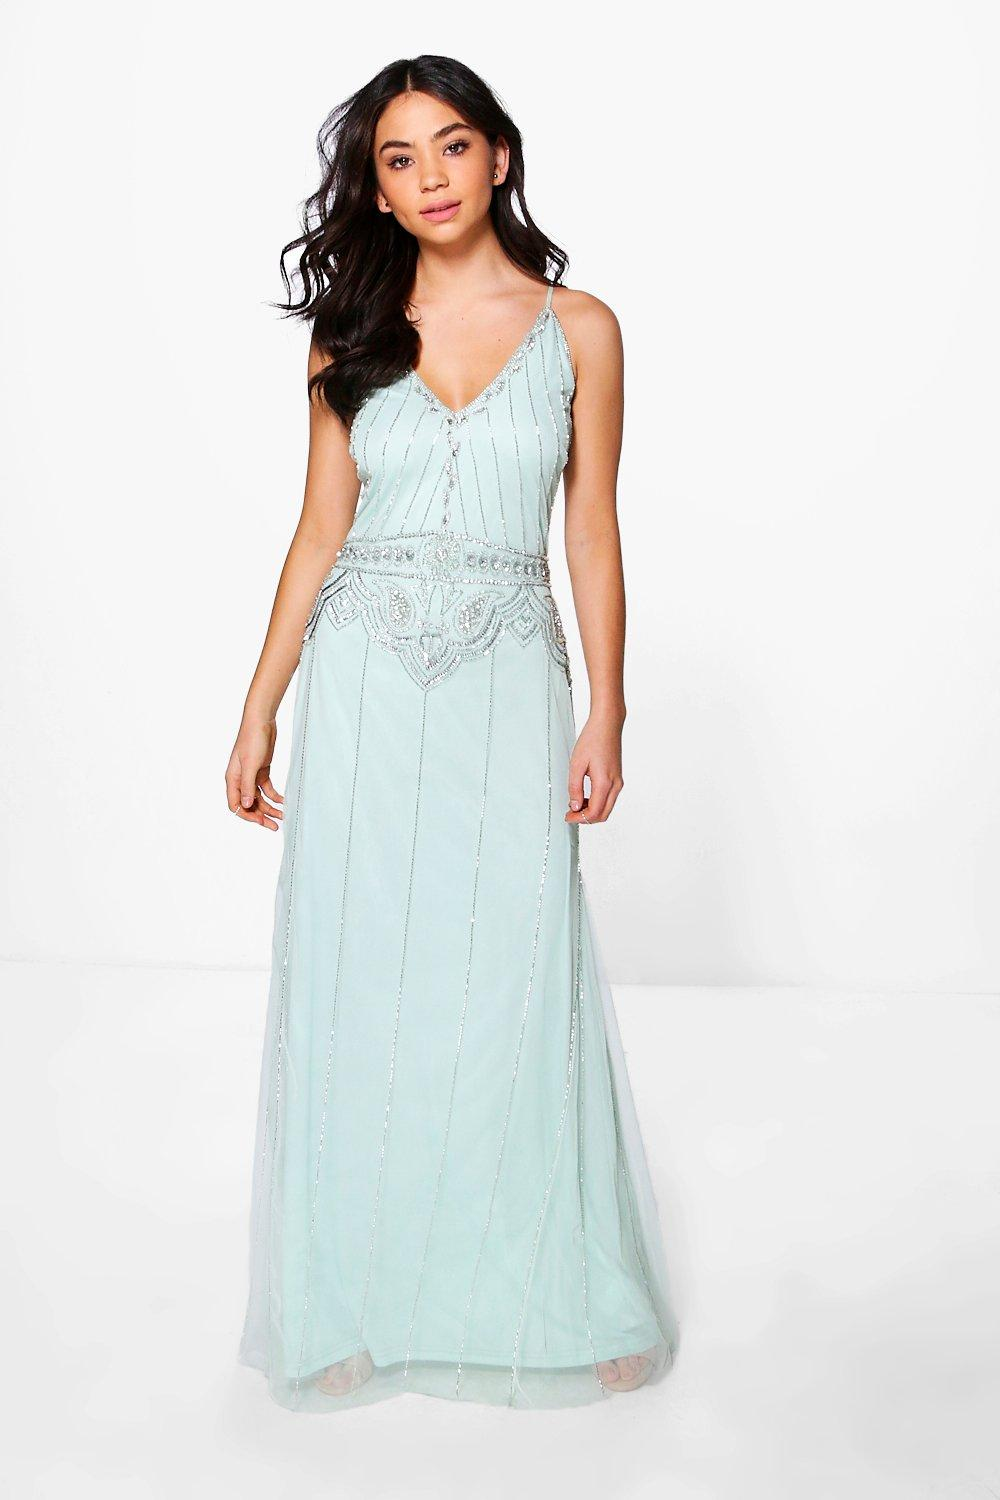 Best 1920s Prom Dresses – Great Gatsby Style Gowns Boutique Tasha Beaded Strappy Maxi Dress mint $80.00 AT vintagedancer.com